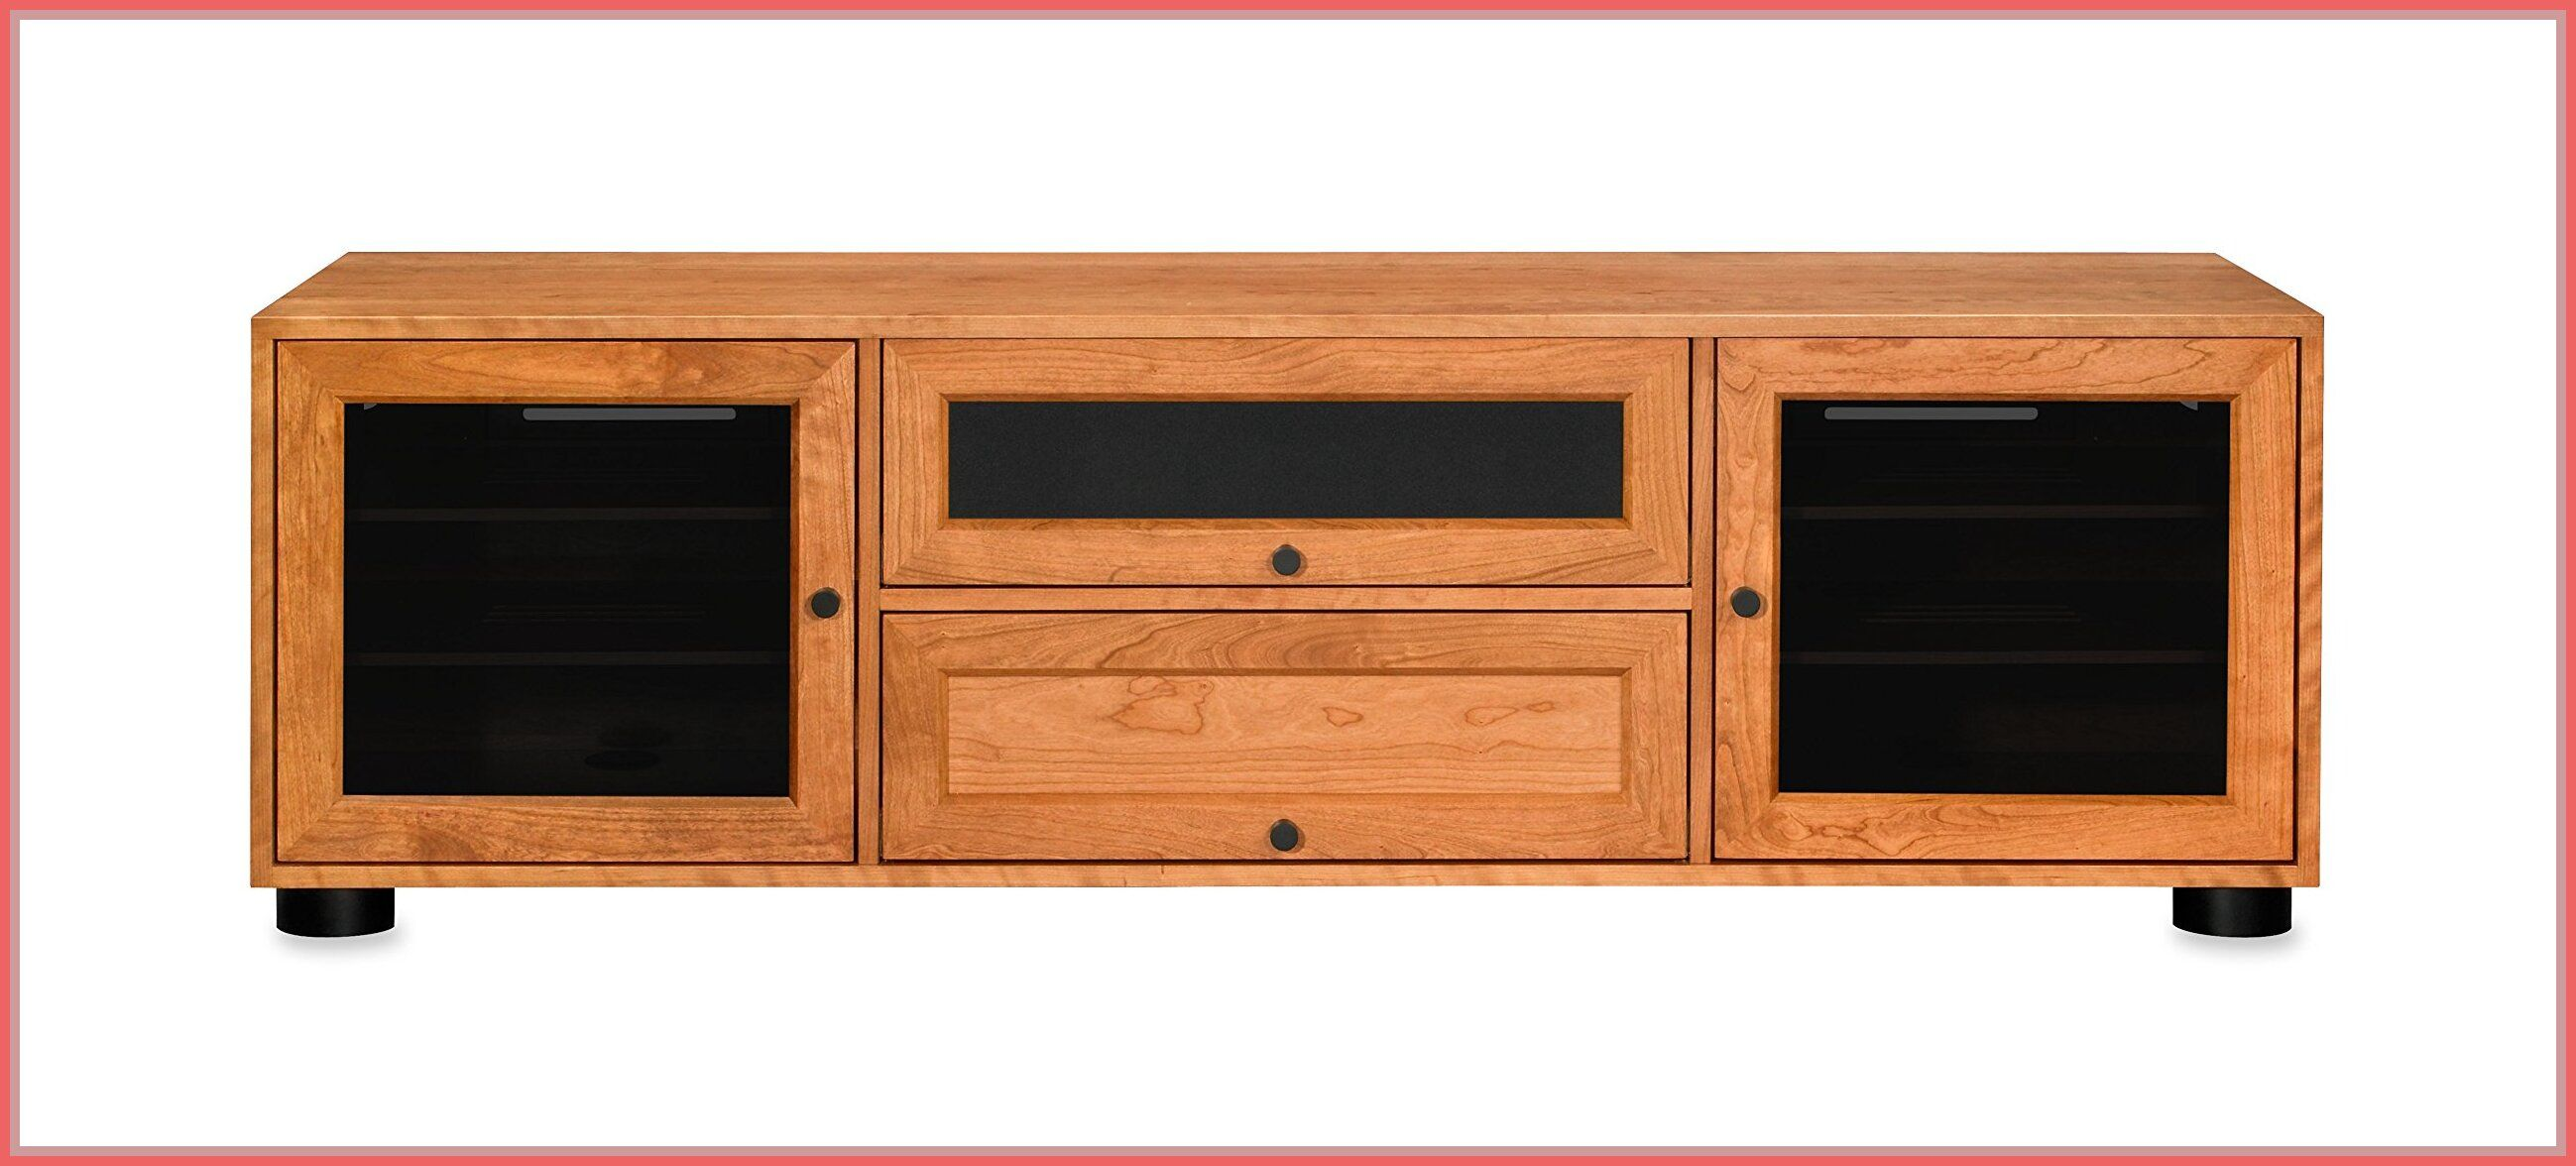 116 reference of 70 wood media tv stand storage console in